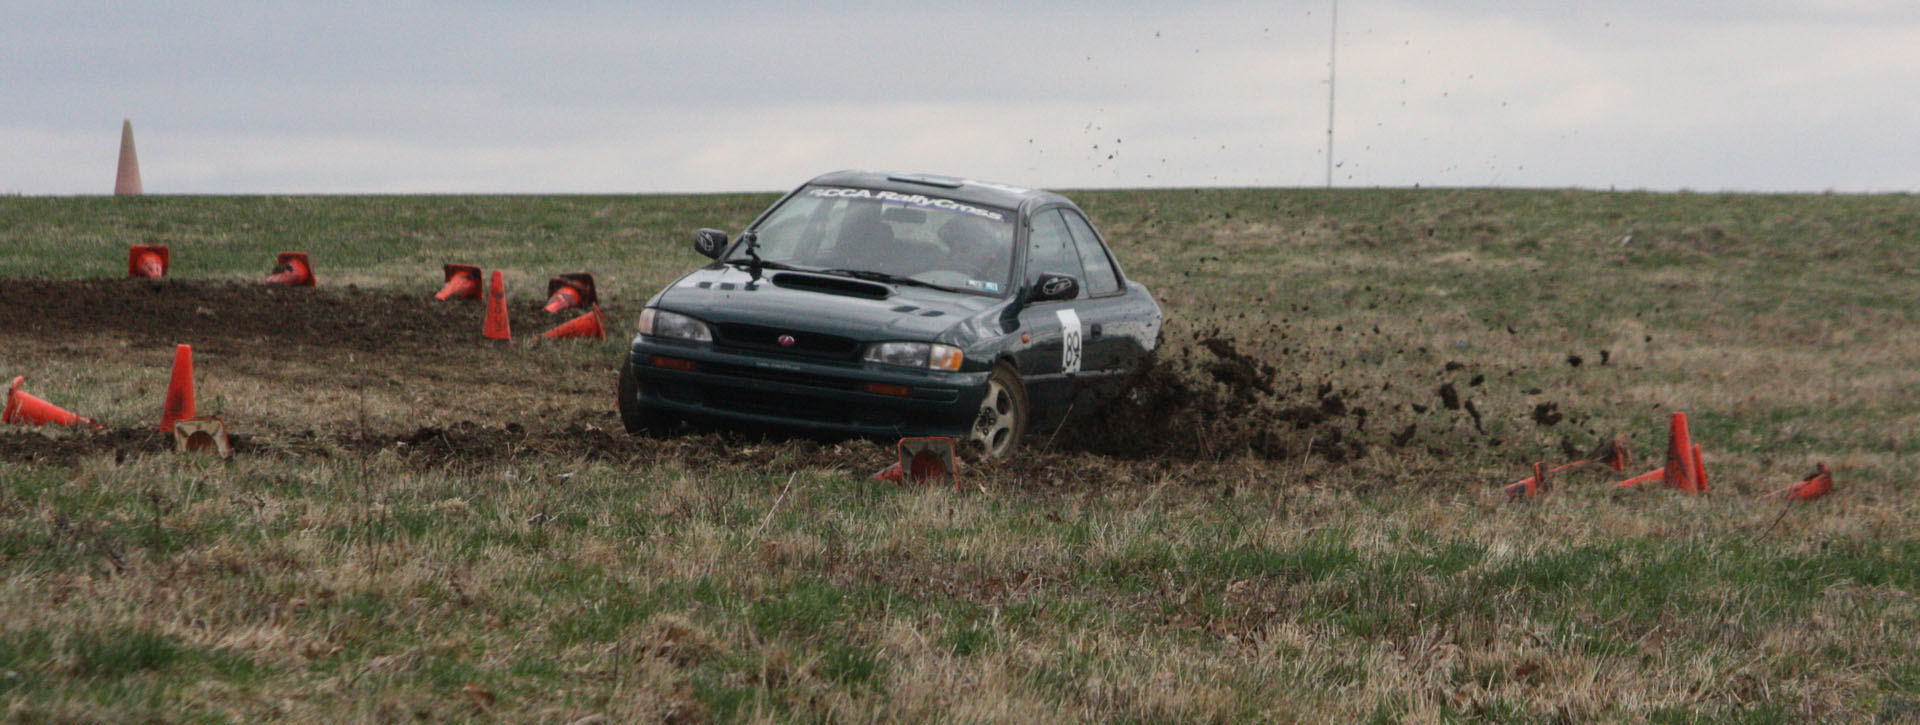 <p>Name: John Roscinski From: Carlisle, PA Runs: RallyCross and occasionally AutoCross Drives: 1996 Subaru Impreza in MA Class (Modified All Wheel Drive) MemberSince: 2010 &nbsp; If you have attended any Susquehanna RallyCross event in the last few years you are sure to have run into our RallyCross Chairperson, John Roscinski. [&hellip;]</p>